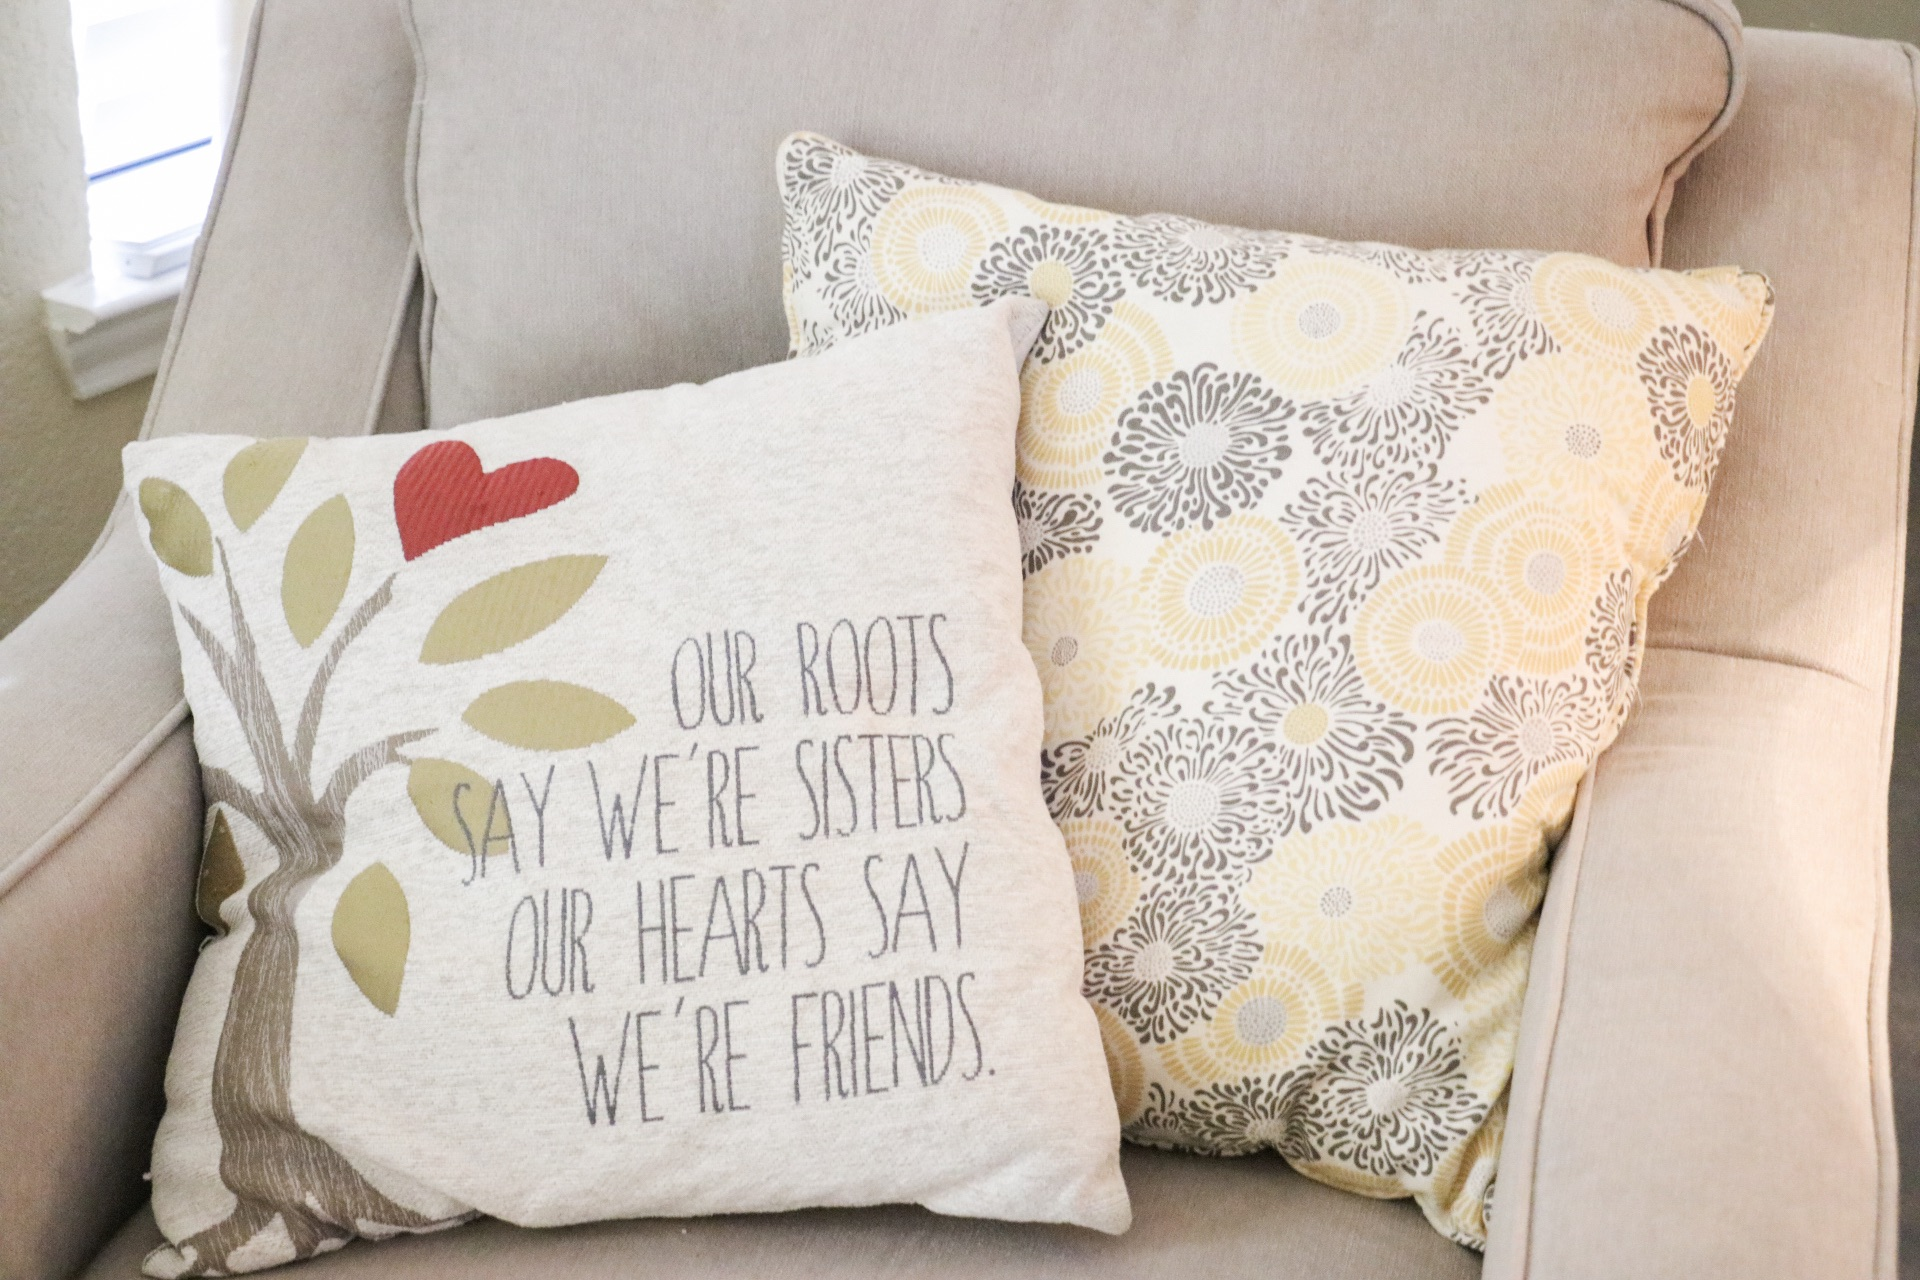 I believe these pillows are from either Pier One or Home Goods!